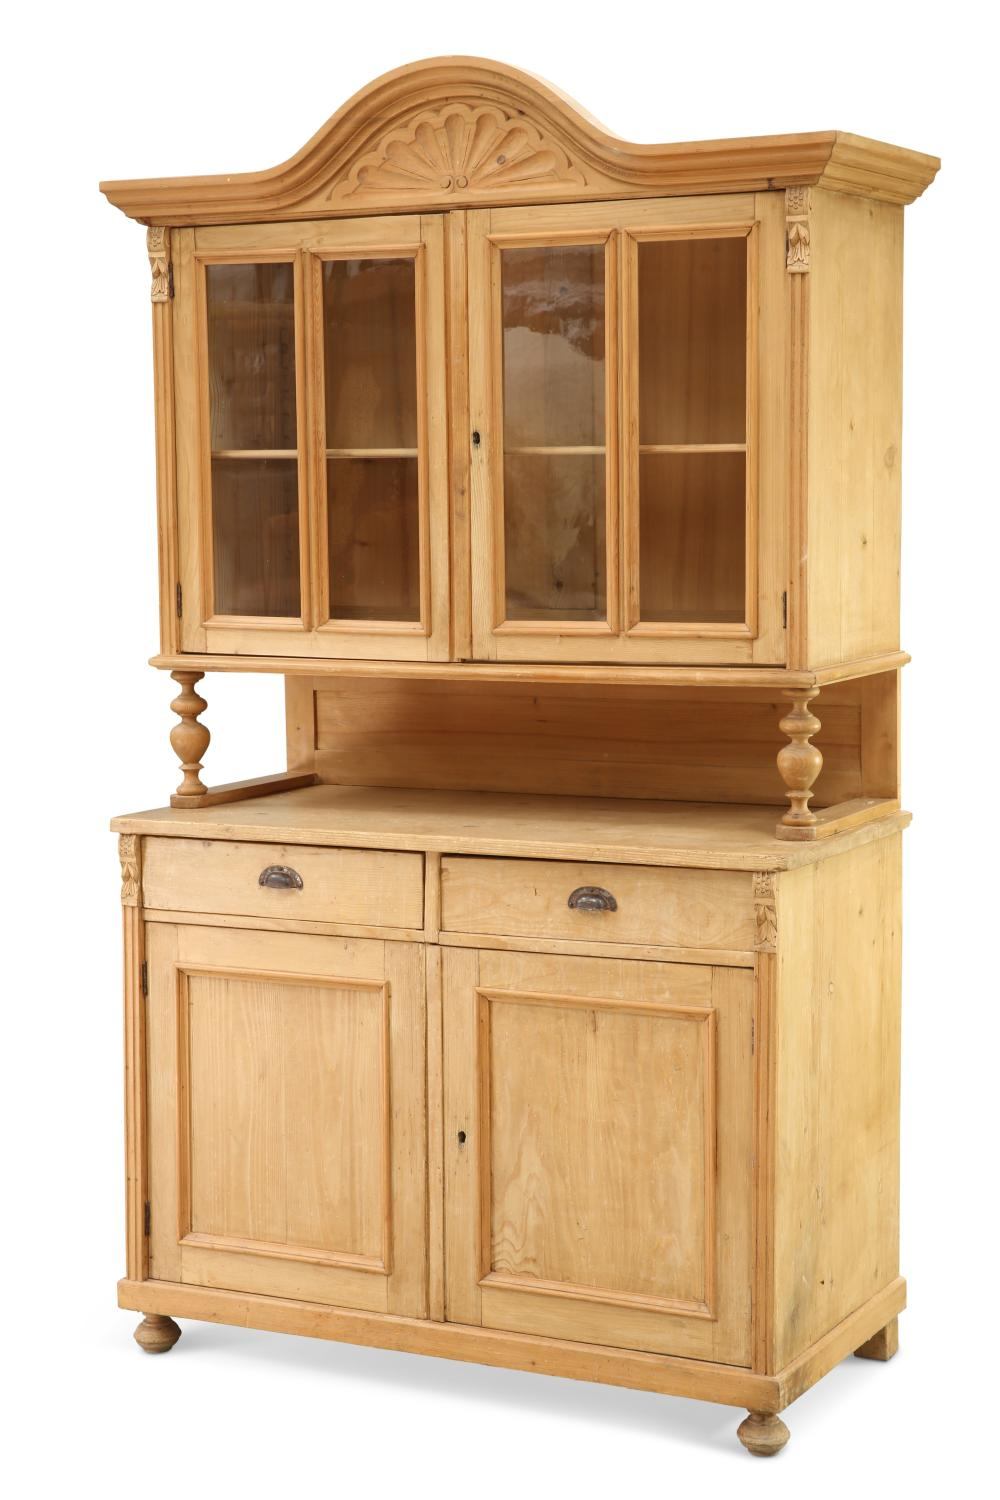 A LATE 19TH CENTURY CONTINENTAL PINE DRESSER, the upper section with arched